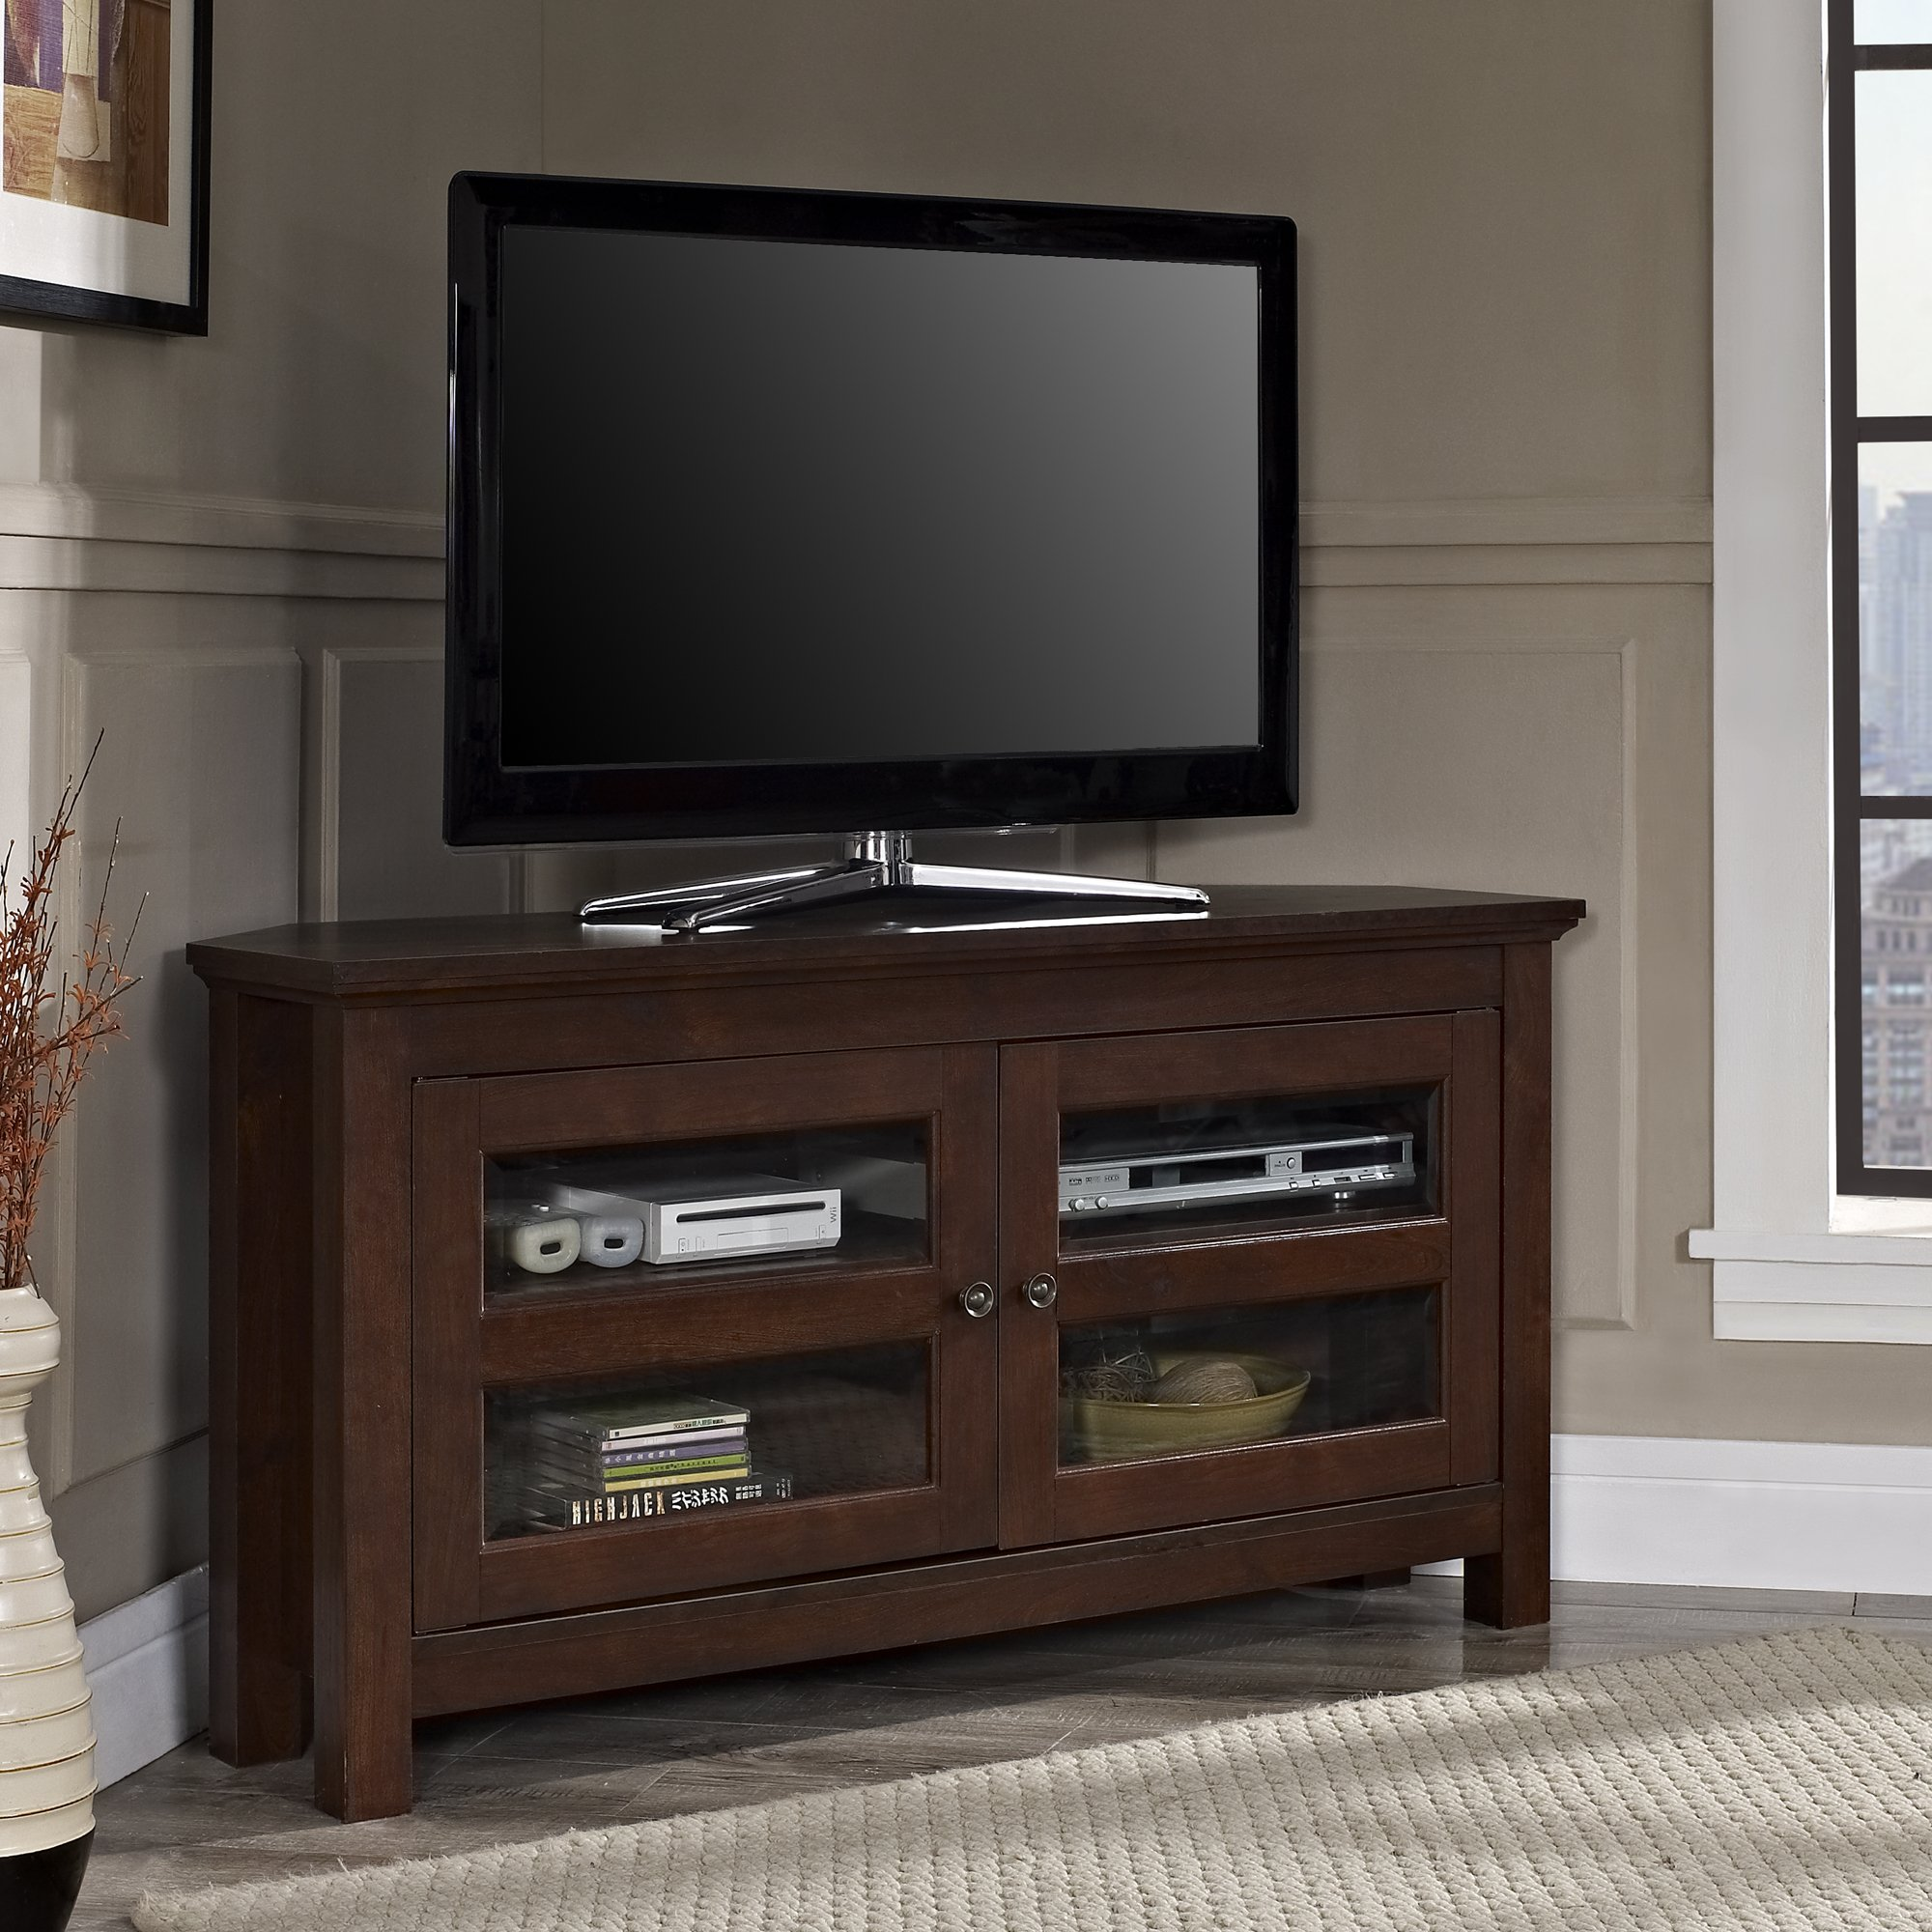 Walker Edison 44'' Brown Wood Cordoba Corner TV Stand Console for Flat Screen TV's Up to 50'' Entertainment Center by Walker Edison Furniture Company